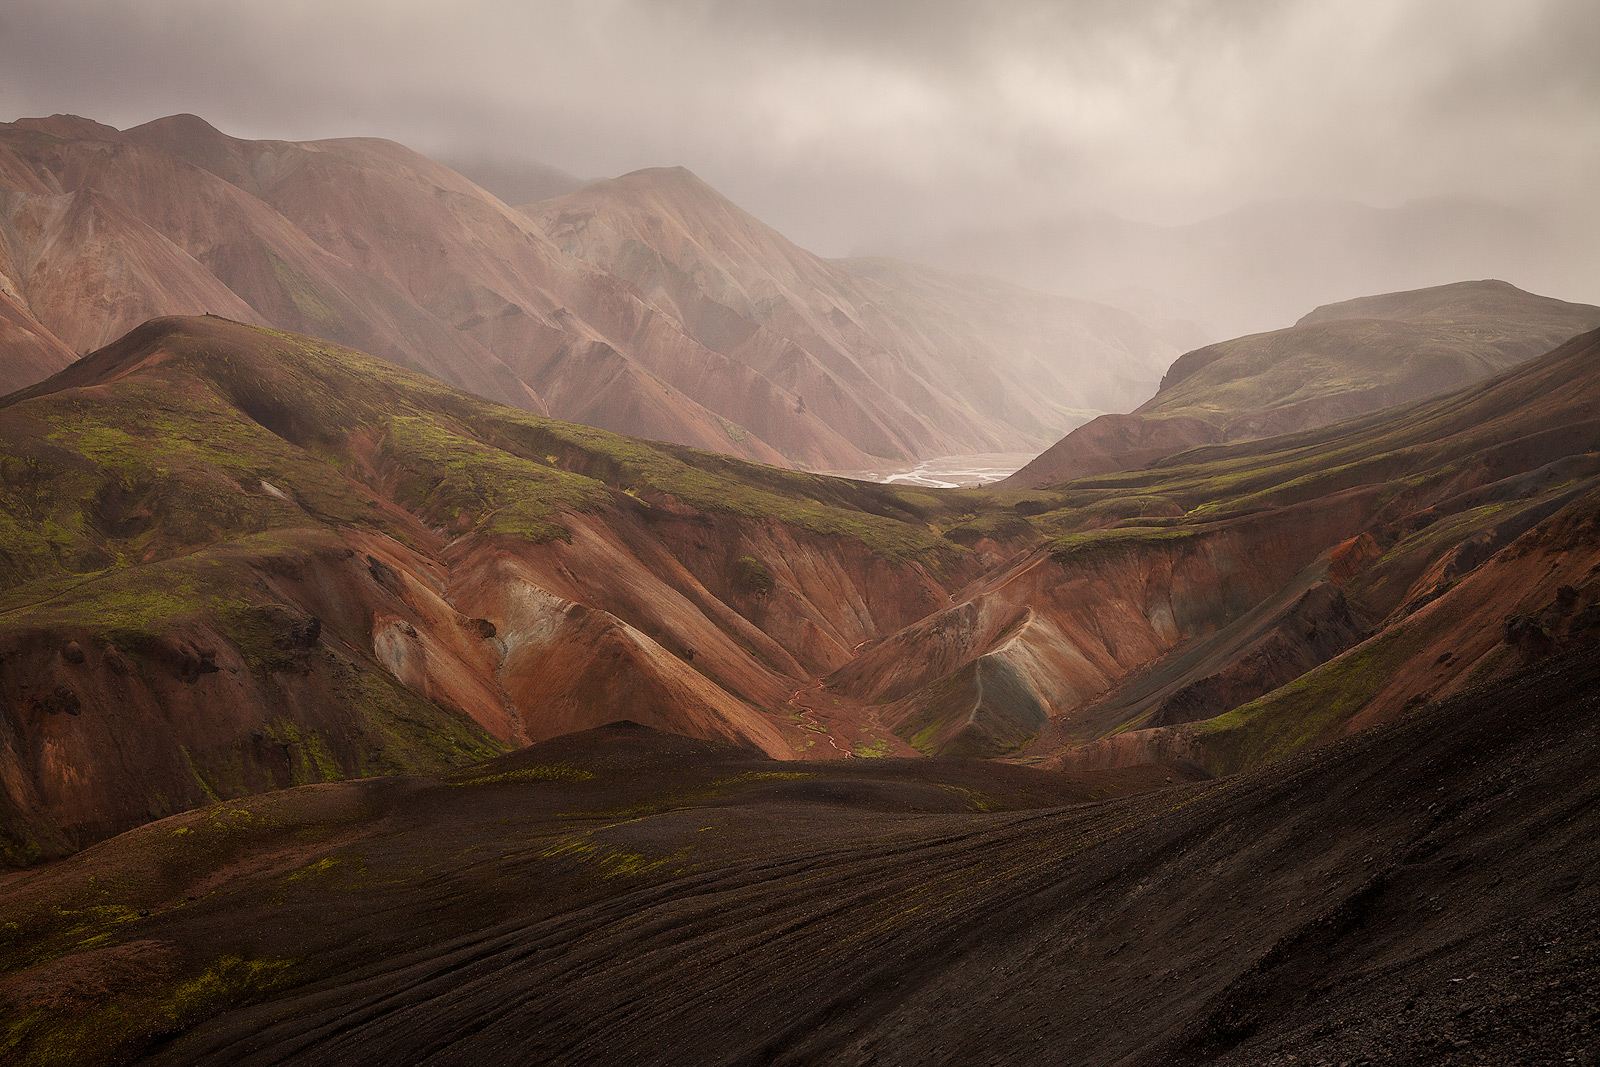 Clouds over sweeping volcanic landscape